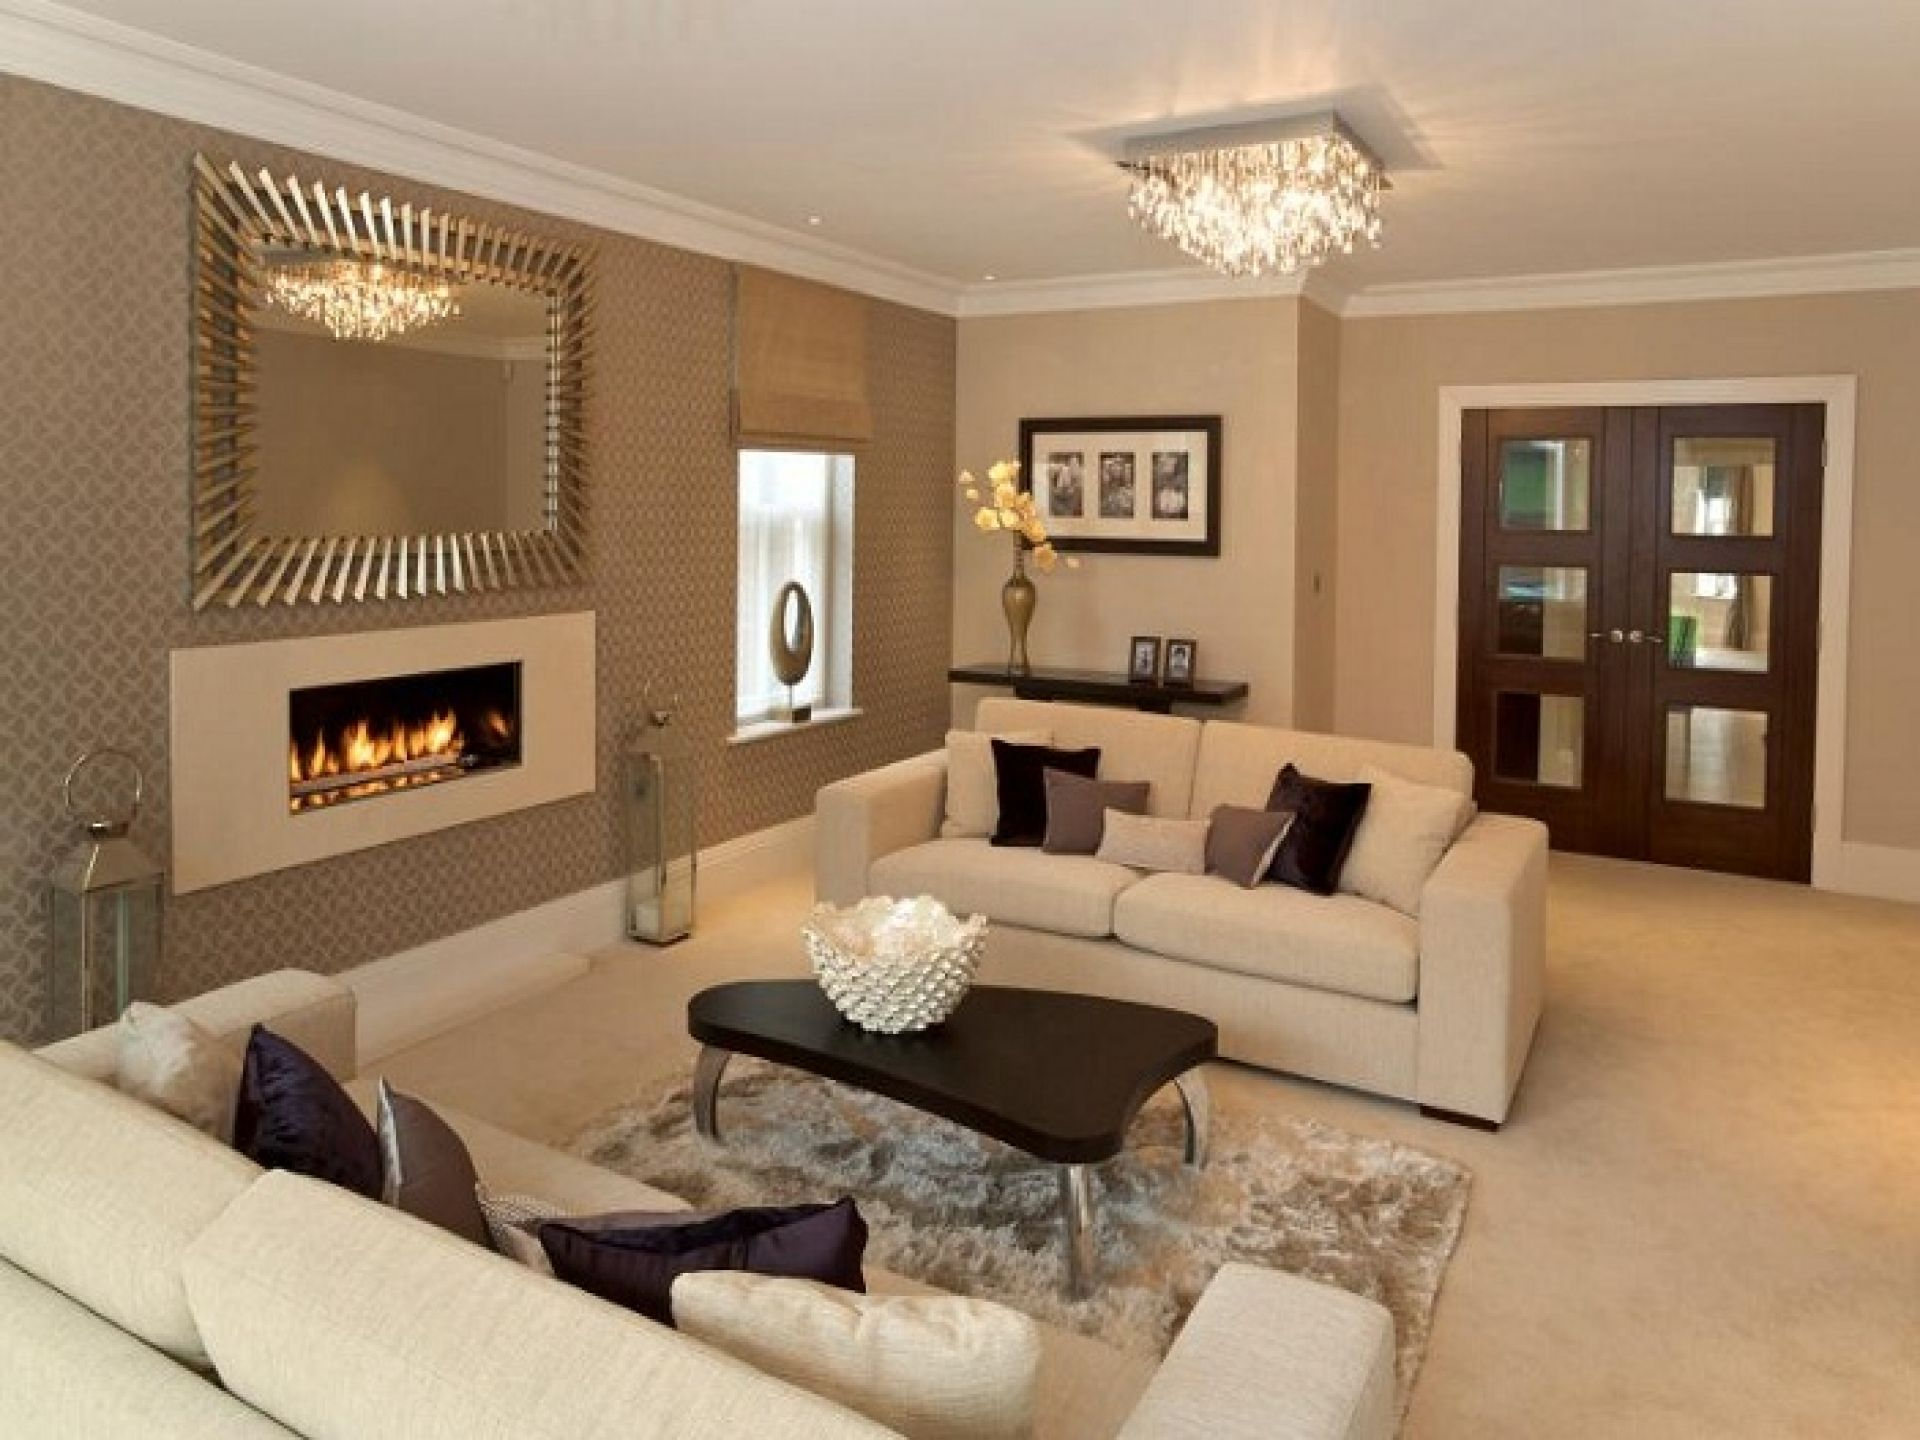 15 EXCLUSIVE LIVING ROOM IDEAS FOR THE PERFECT HOME | Living room ...